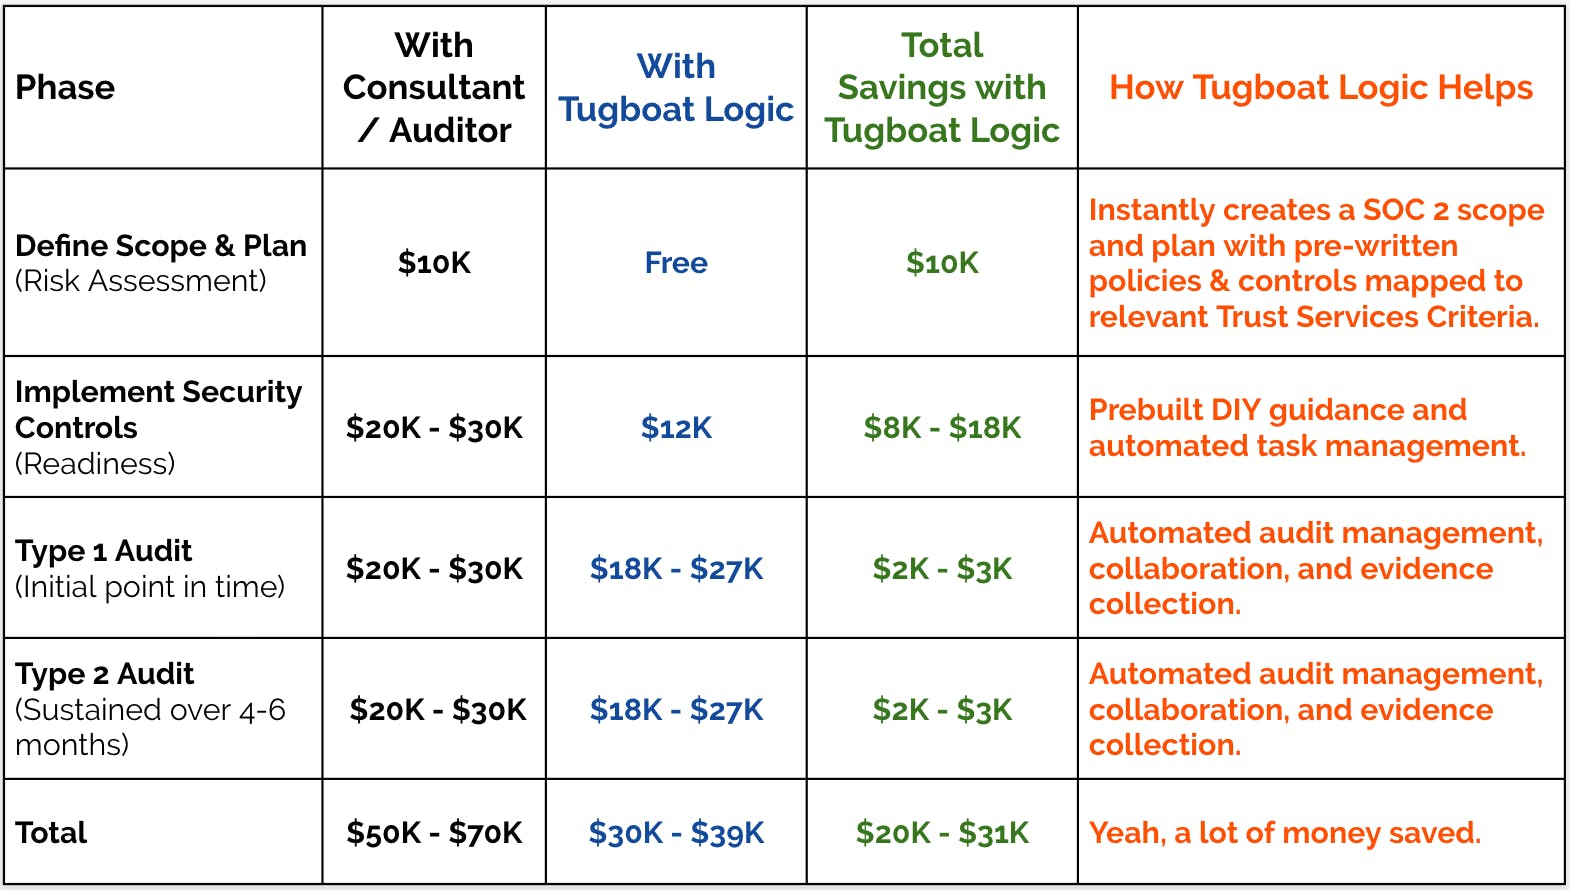 SOC 2 cost table showing how much each phase costs: risk assessment, readiness, and audit (source: Tugboat Logic)